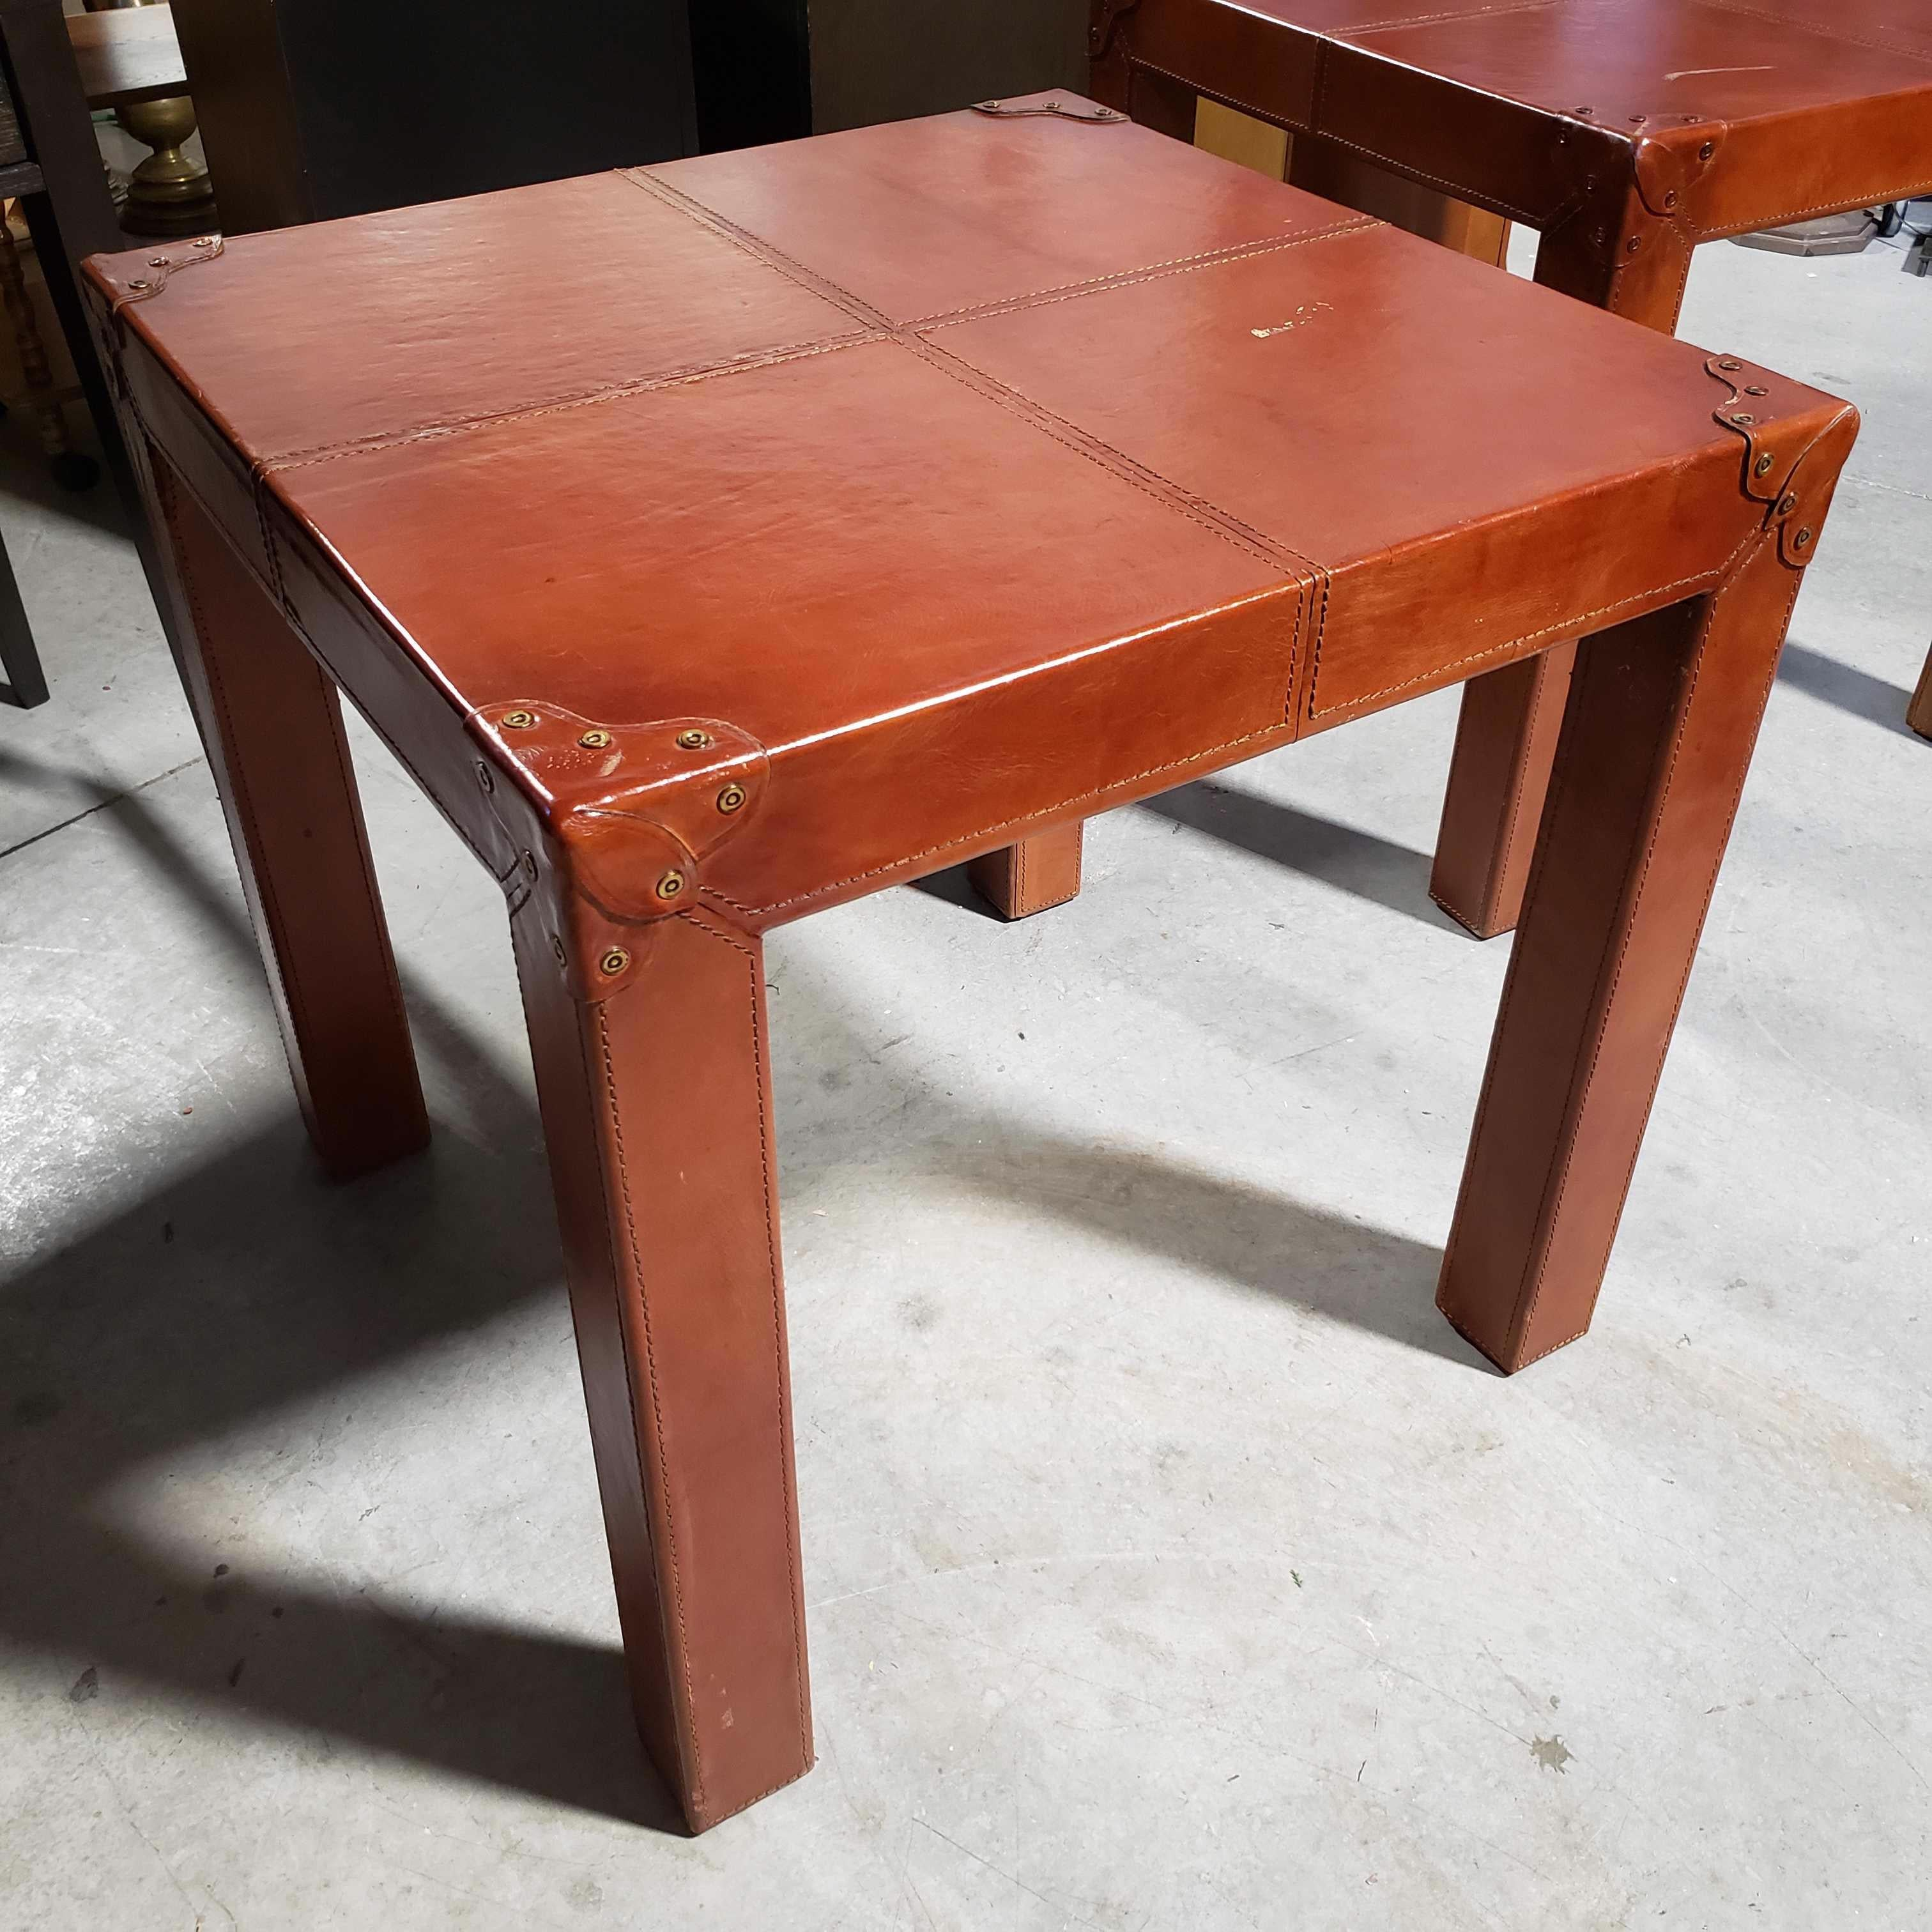 "28""x 28""x 27"" Leather Wrapped with Riveted Corners Square Tall End Table"